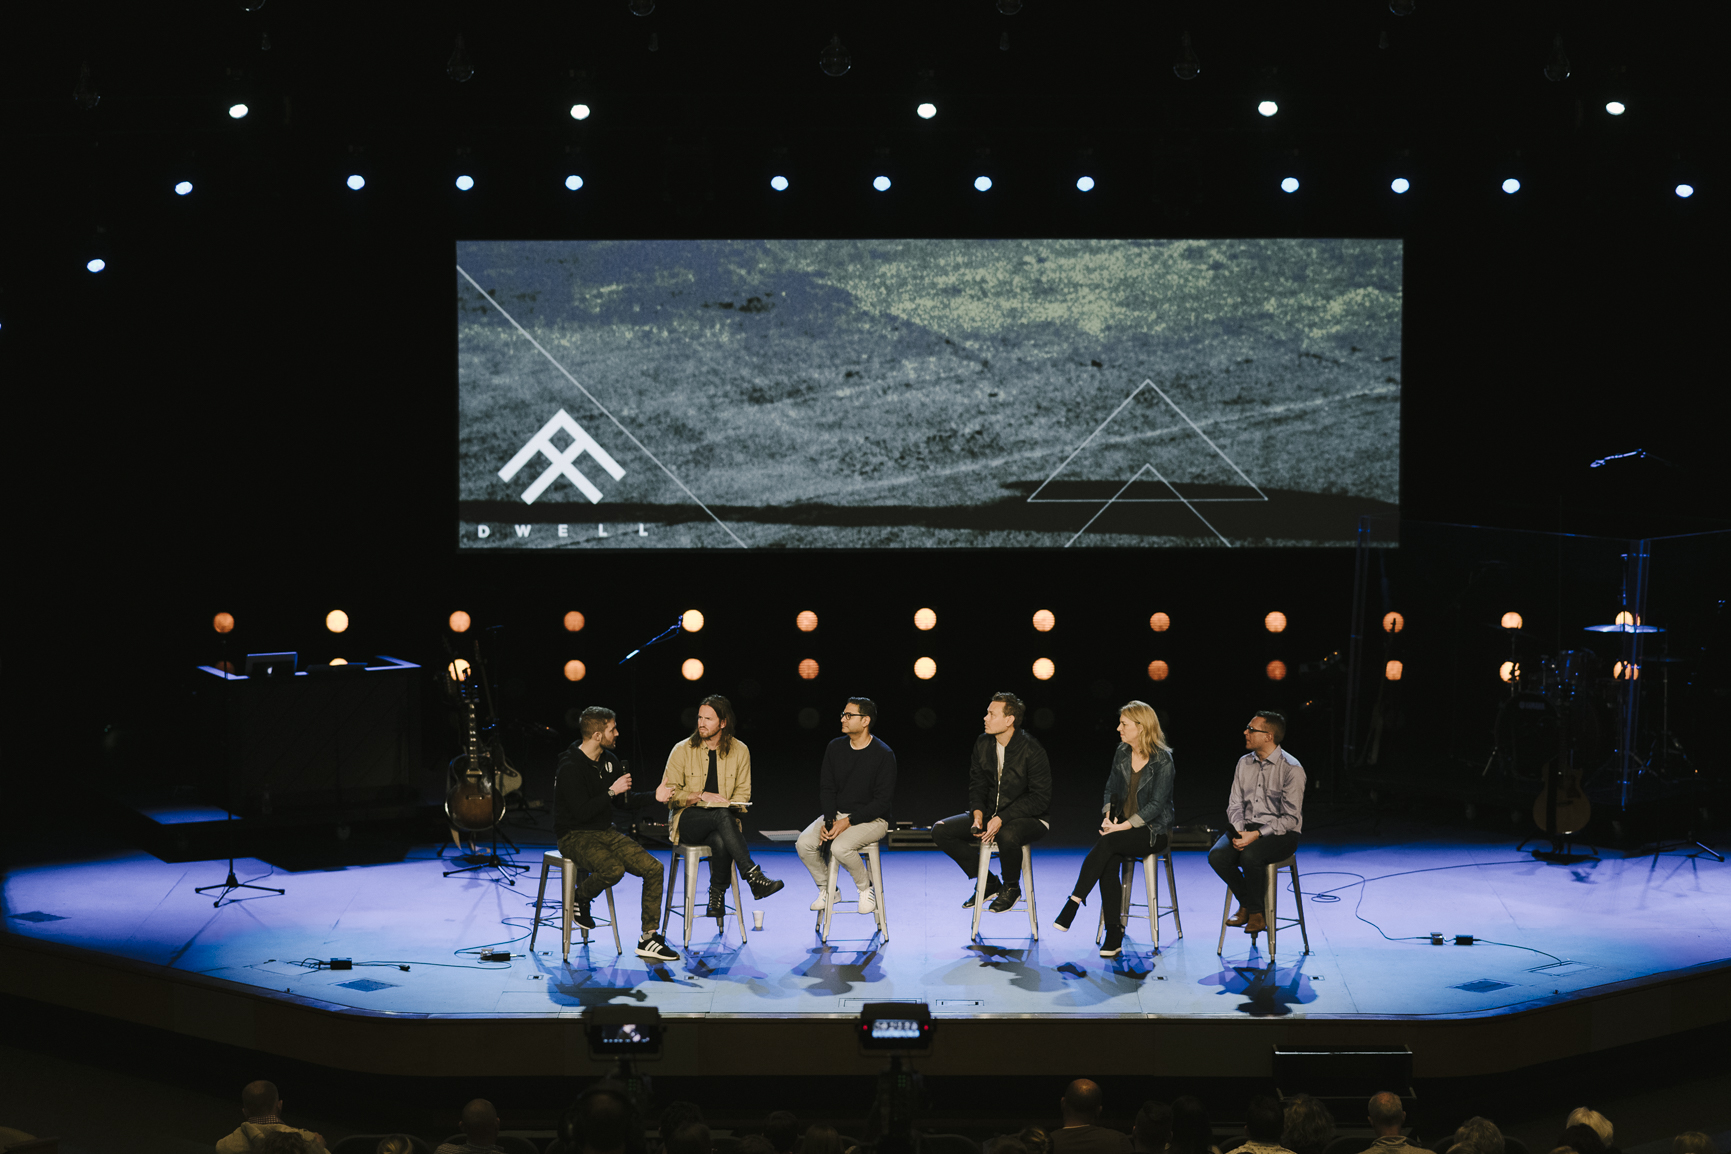 Dwell speakers and co-founders in onstage panel discussion, Dwell Conference 2019.